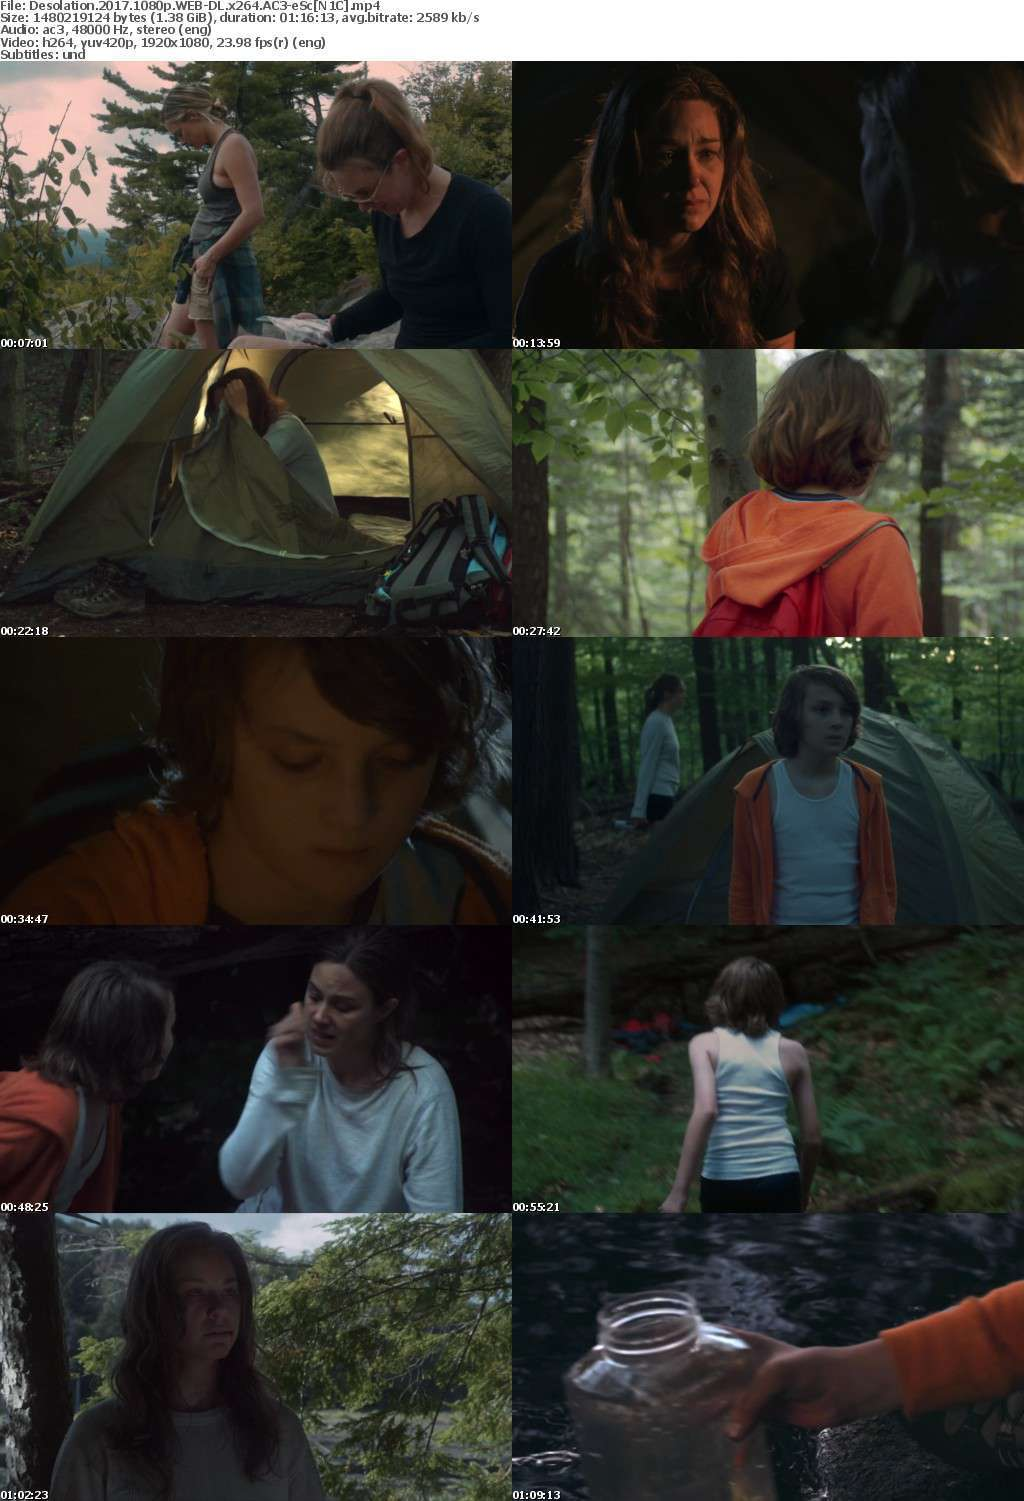 Desolation (2017) 1080p WEB-DL x264 AC3-eSc